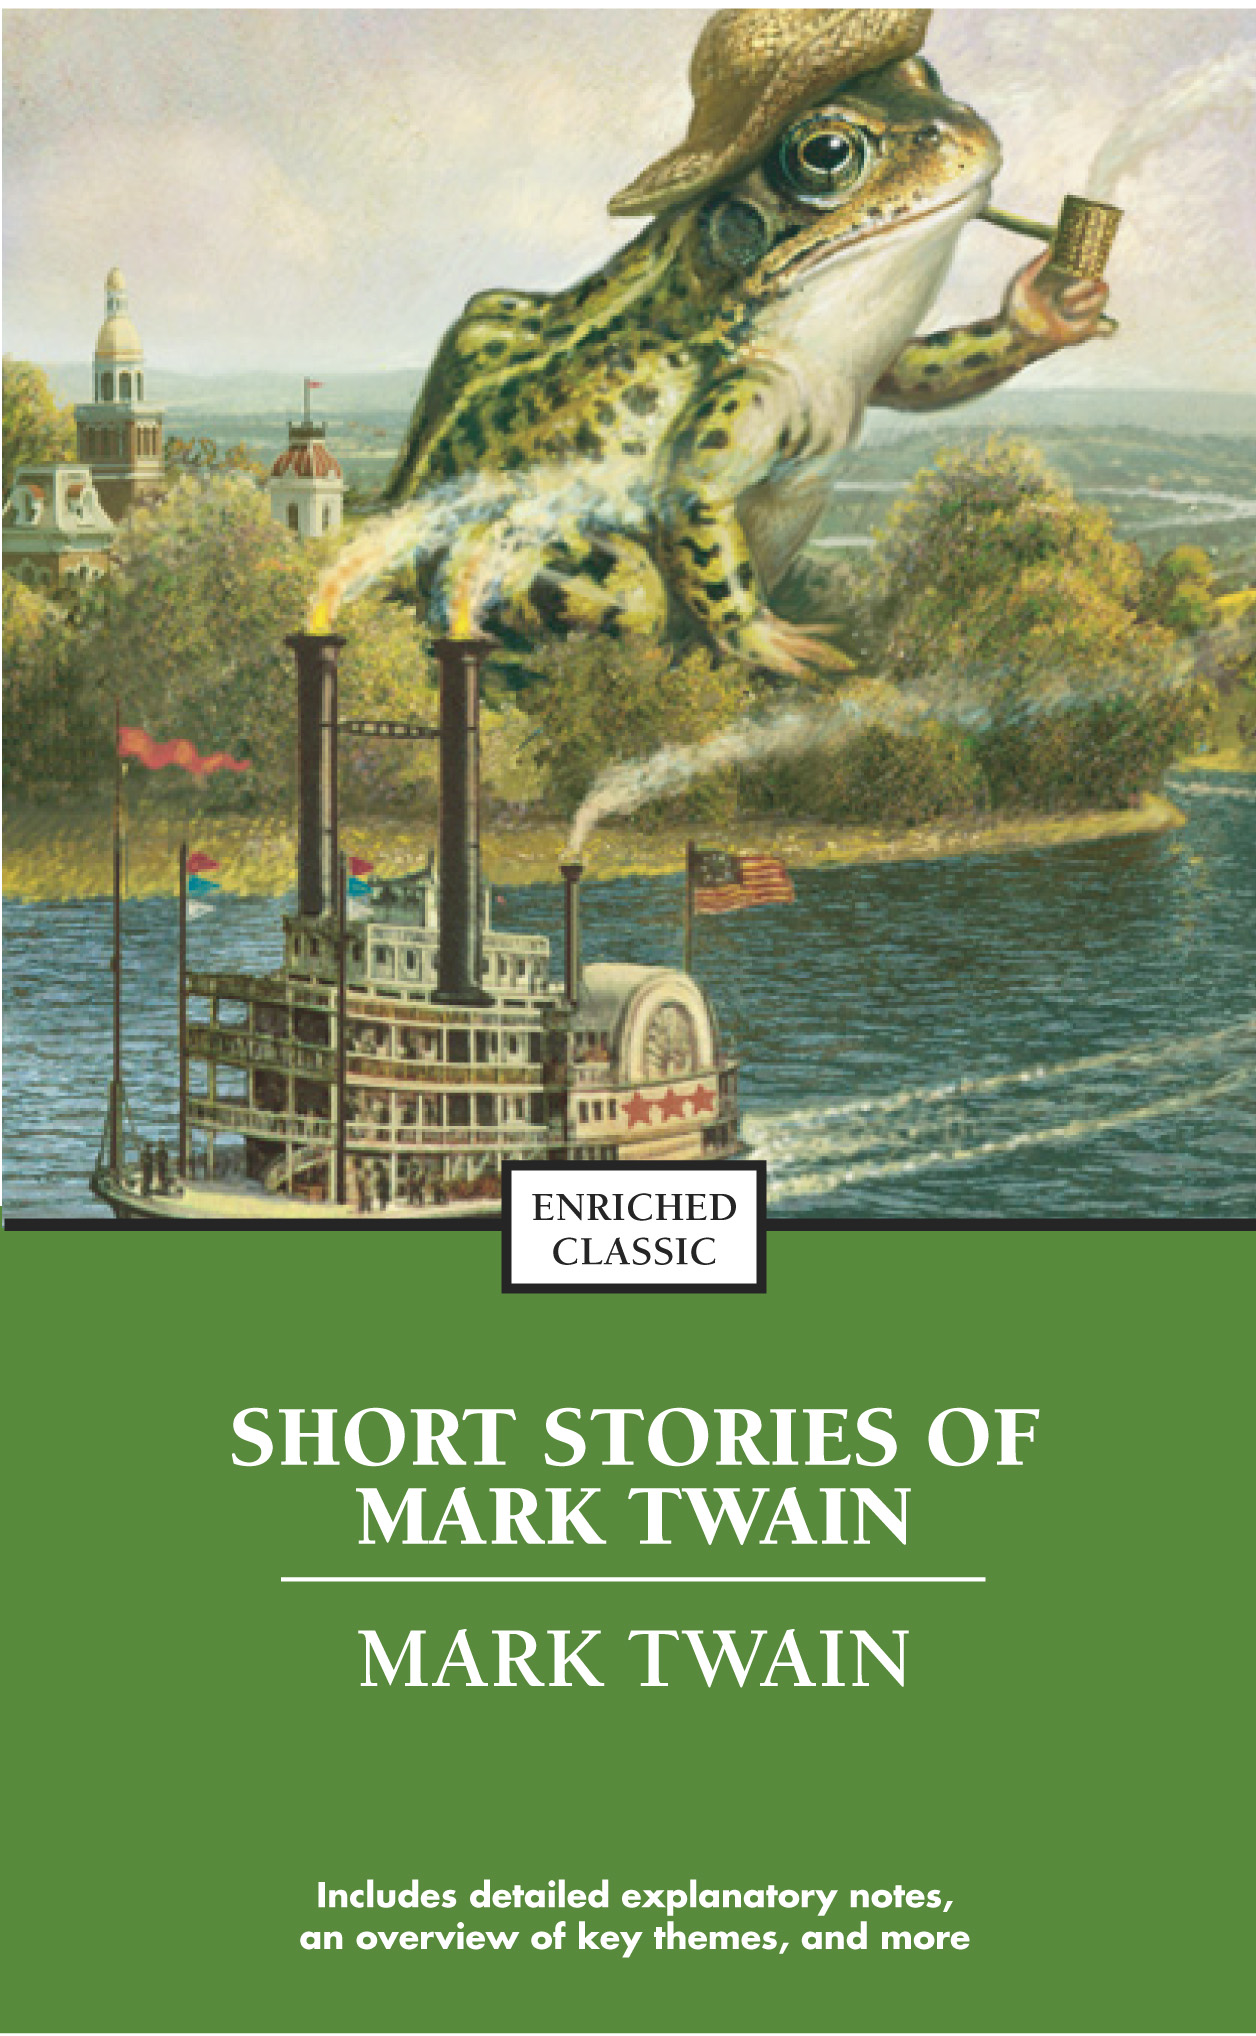 an introduction to the life and literature of mark twain an author from the 1800s The adventures of huckleberry finn book review since retirement, paul likes reading classical english literature life of mark twain.